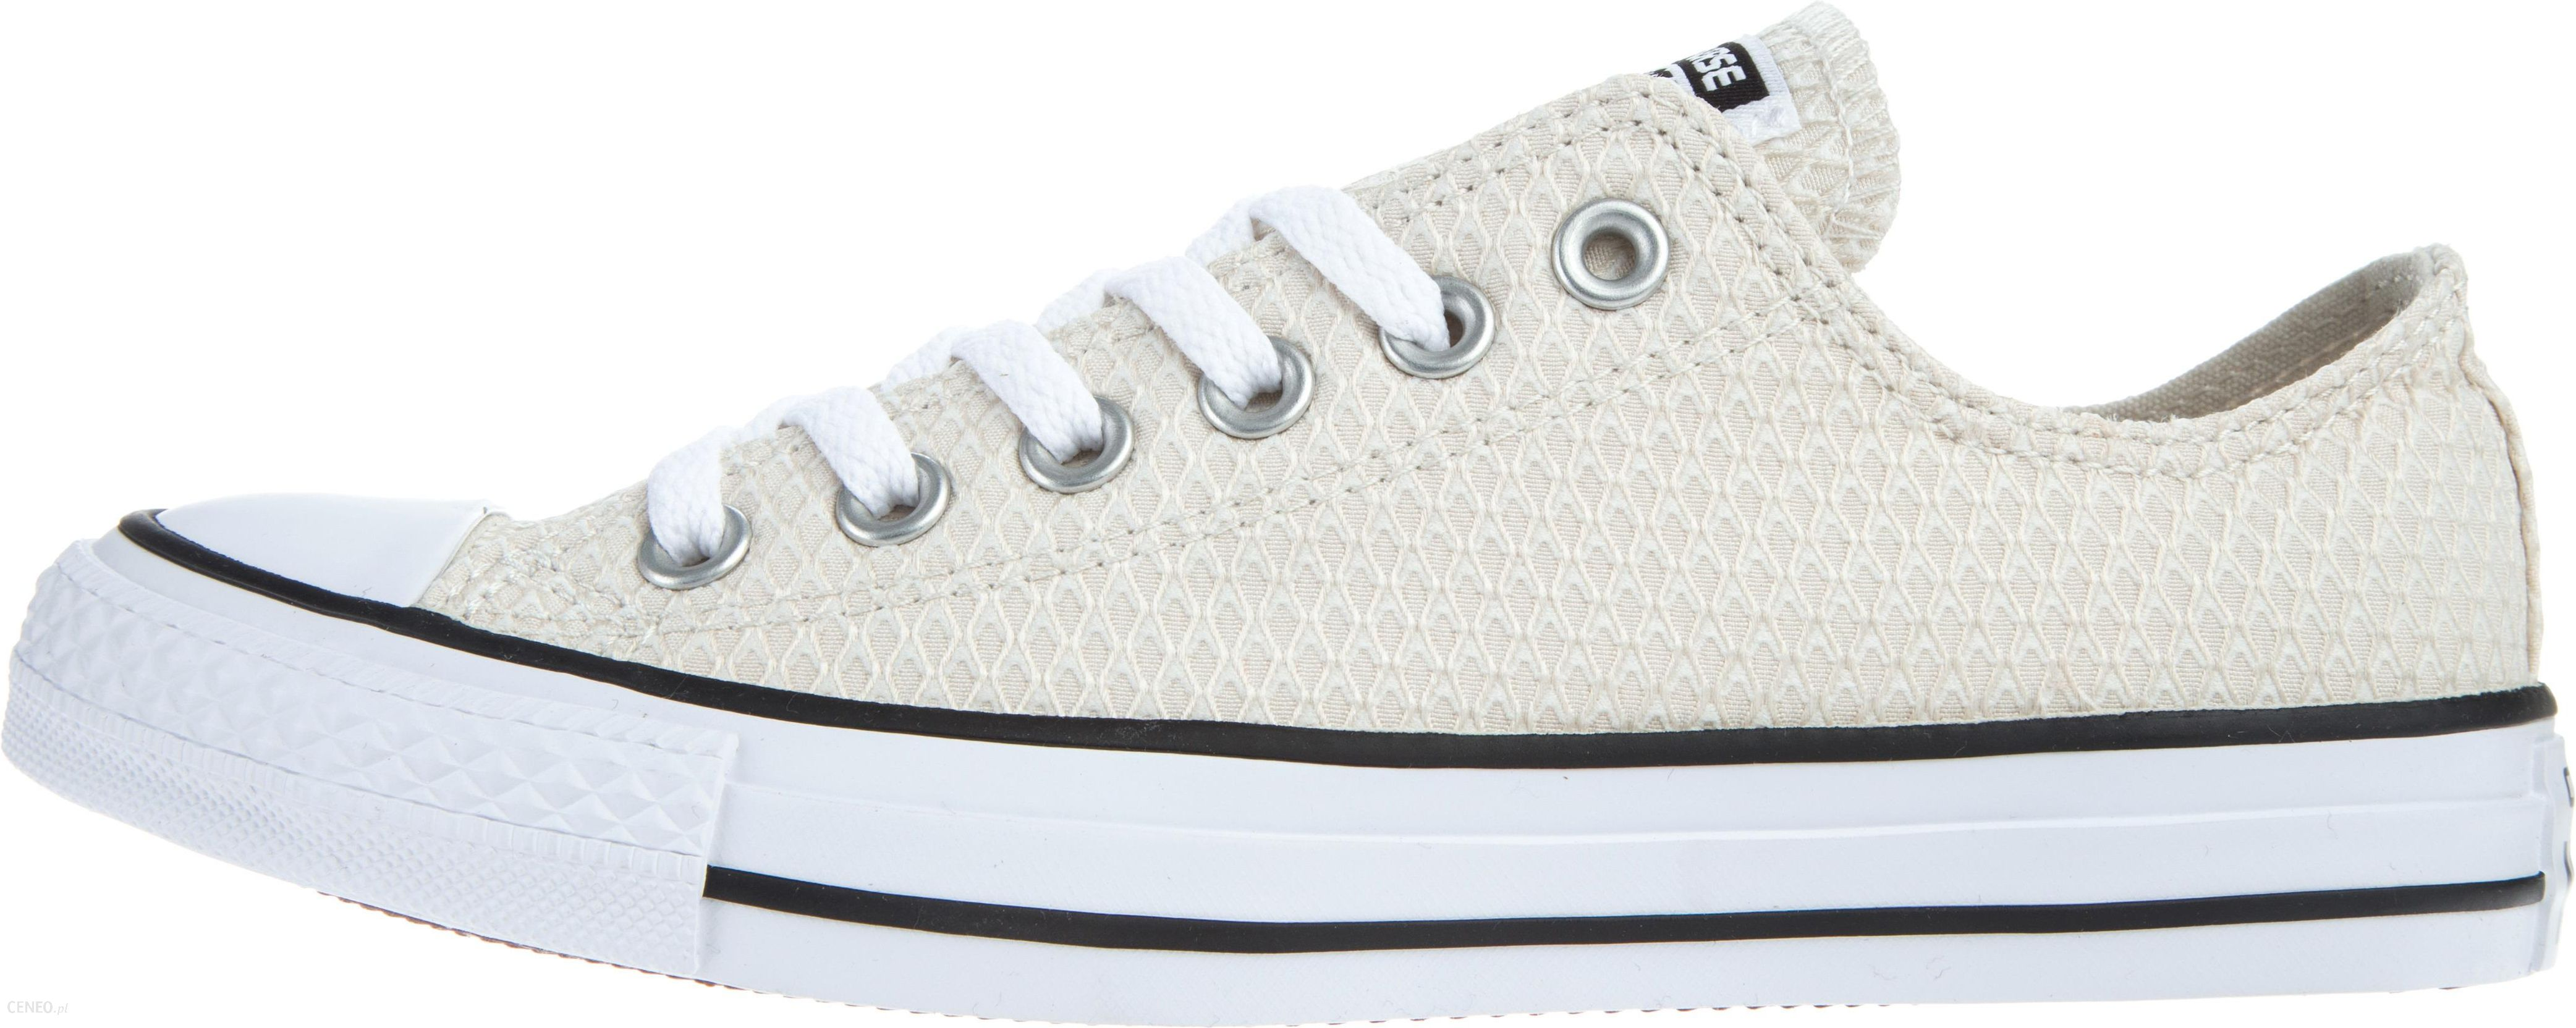 Converse Chuck Taylor All Star Woven Sneakers Biały 41 Ceny i opinie Ceneo.pl